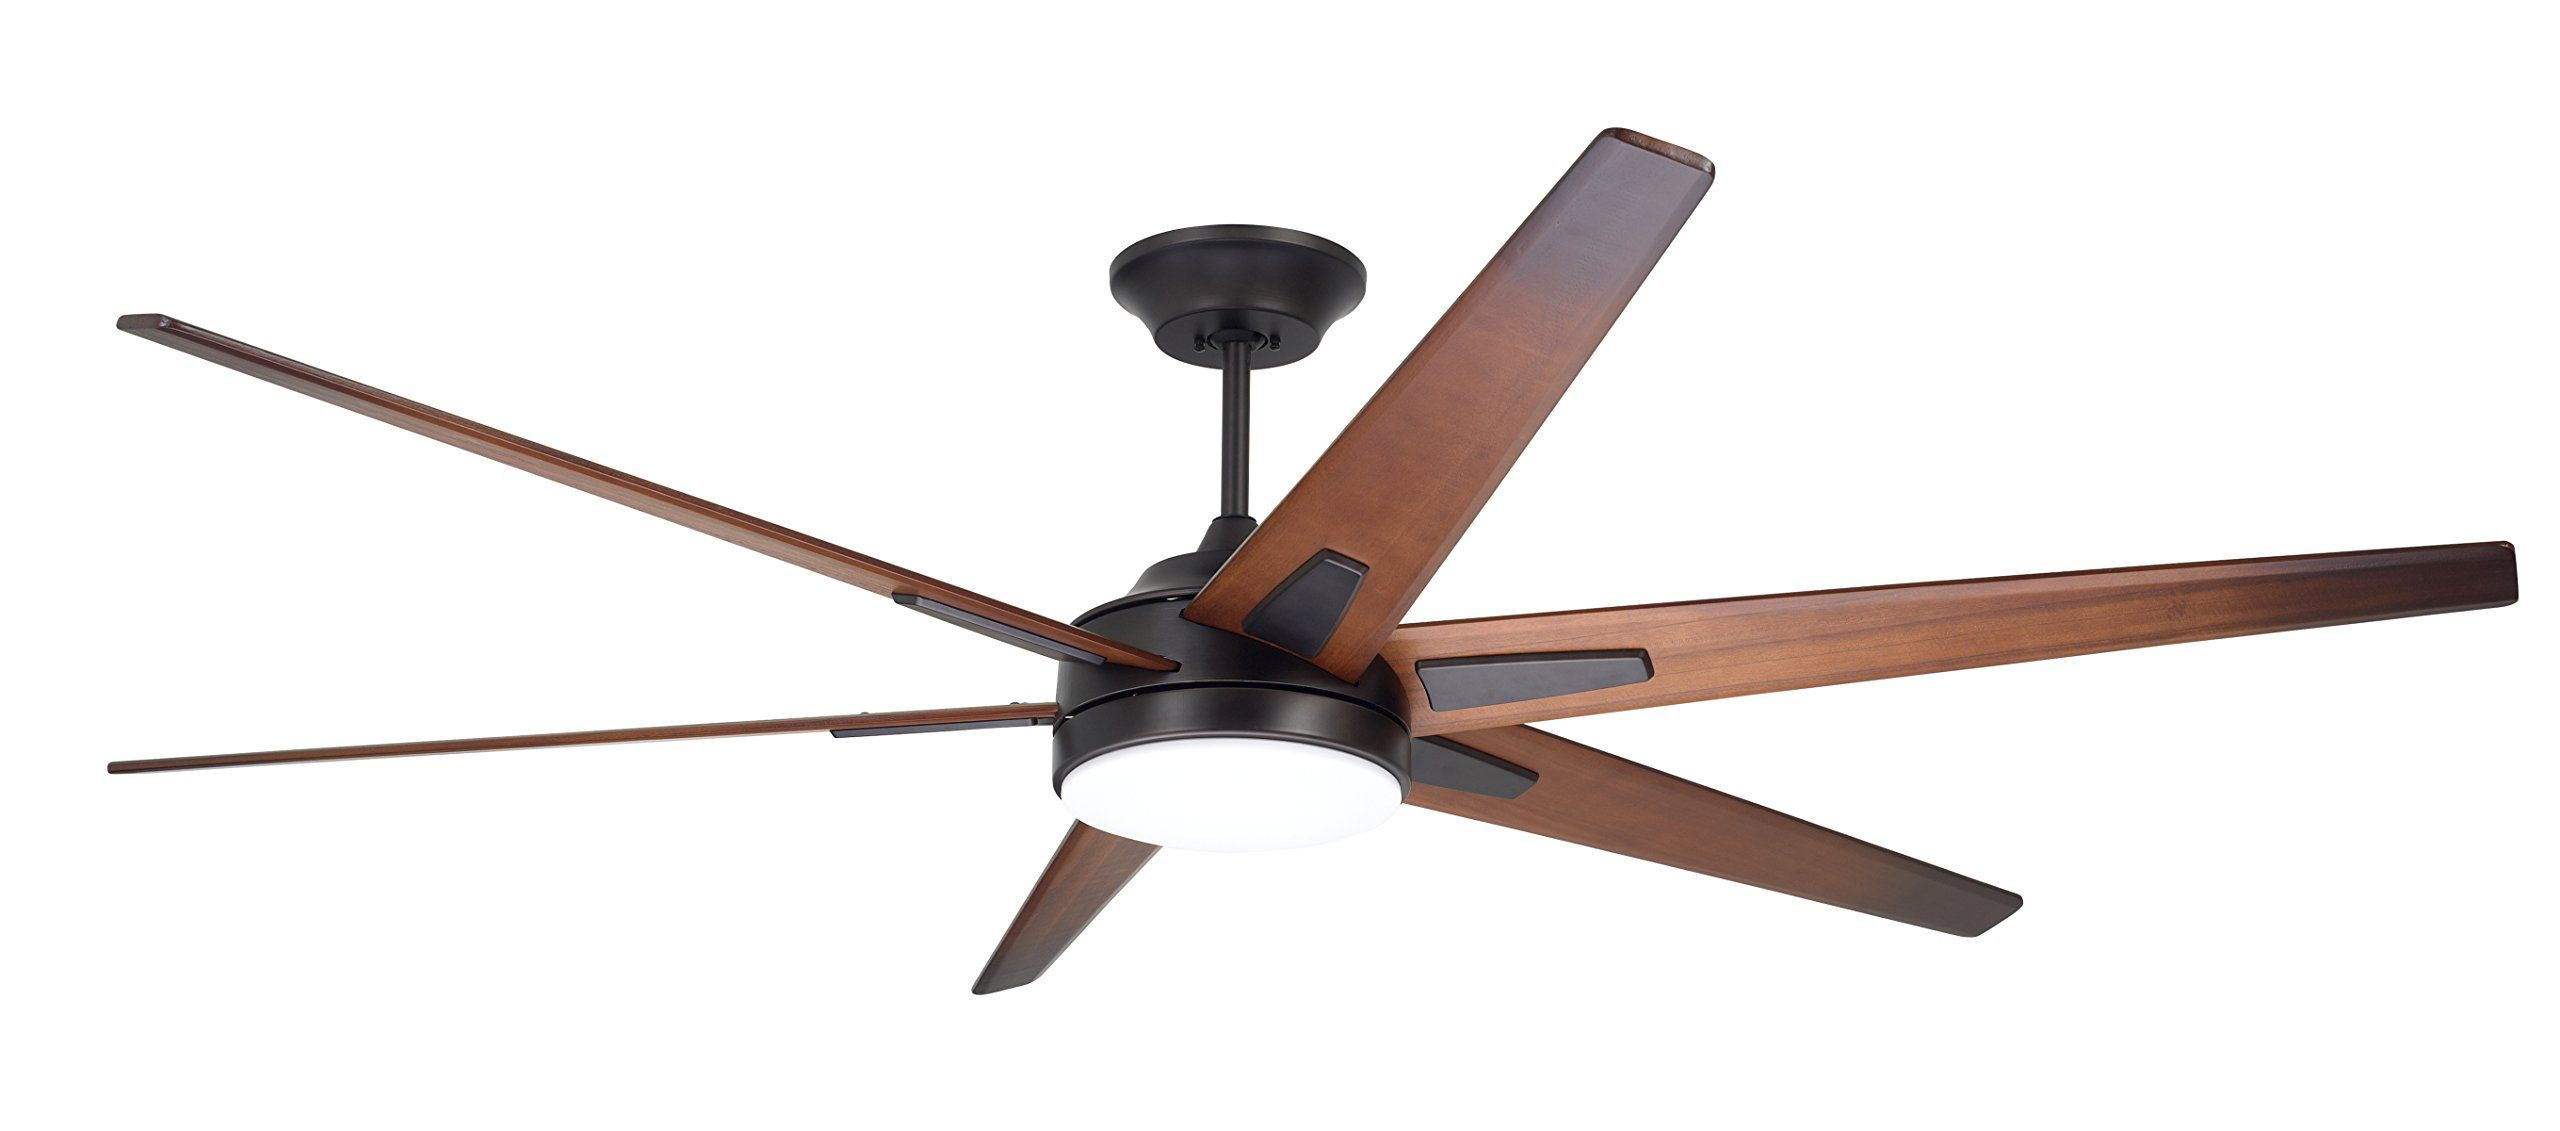 Emerson Cf915w72orb 72 Inch Modern Rah Eco Ceiling Fan 6 Blade Ceiling Fan With Led Lighting And 6 Speed Wa In 2020 Ceiling Fan Led Ceiling Fan Ceiling Fan With Light